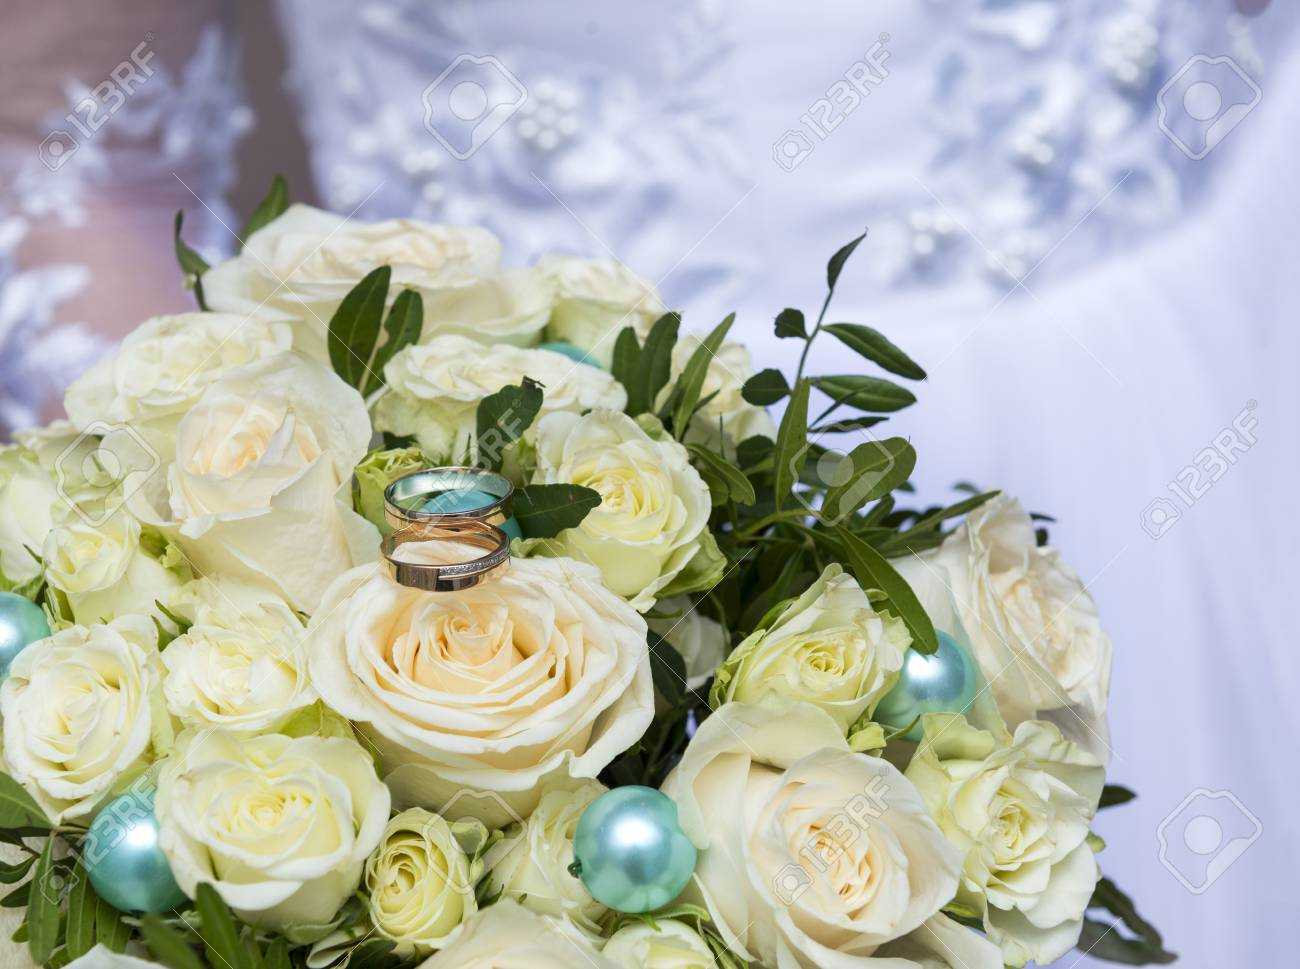 Wedding Bouquet Of The Bride From White Roses With Gold Wedding